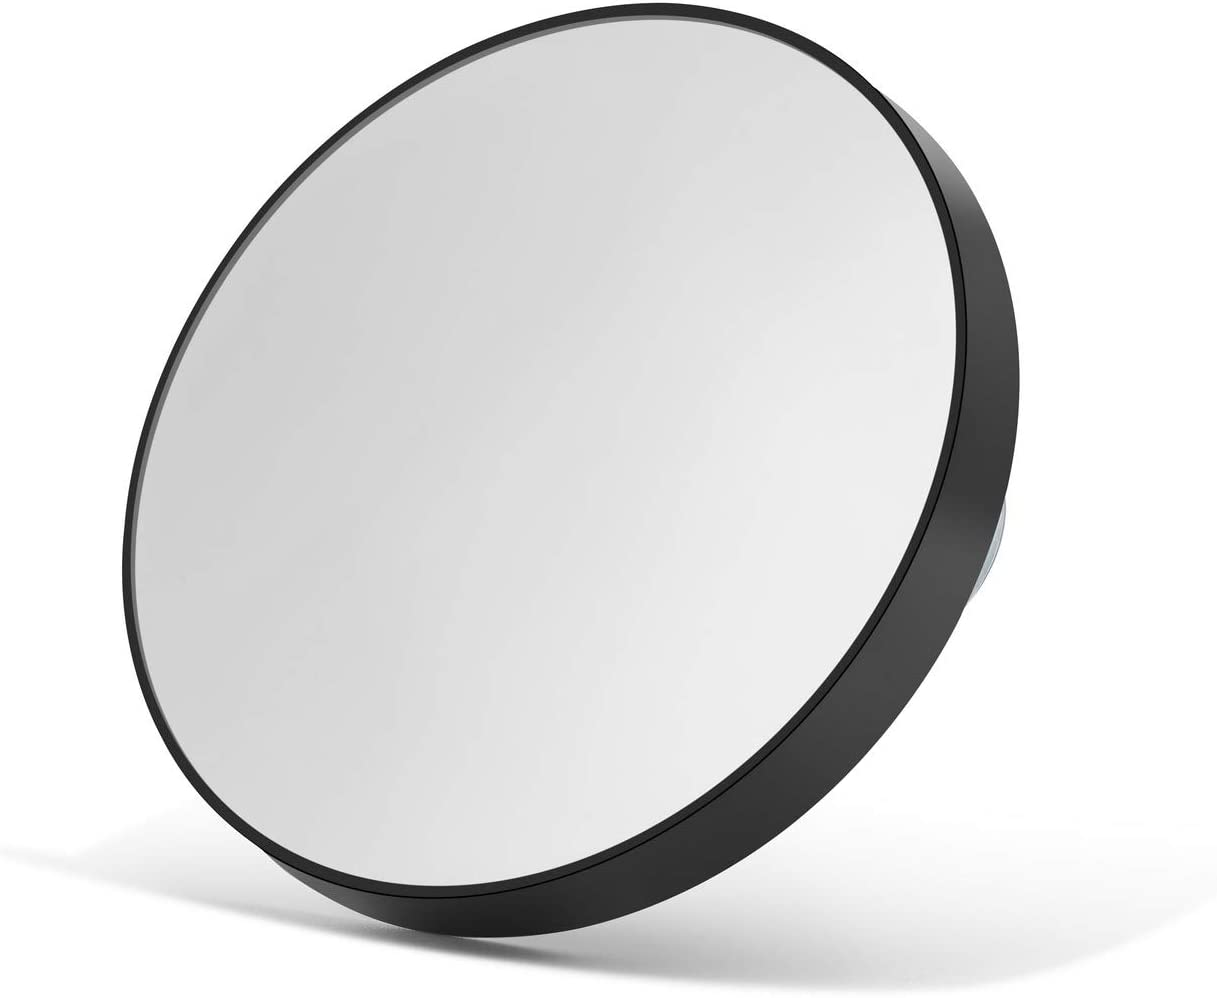 OMIRO 10X Magnifying Makeup Mirror with 2 Suction Cups, Travel Size Round Black 3.5""